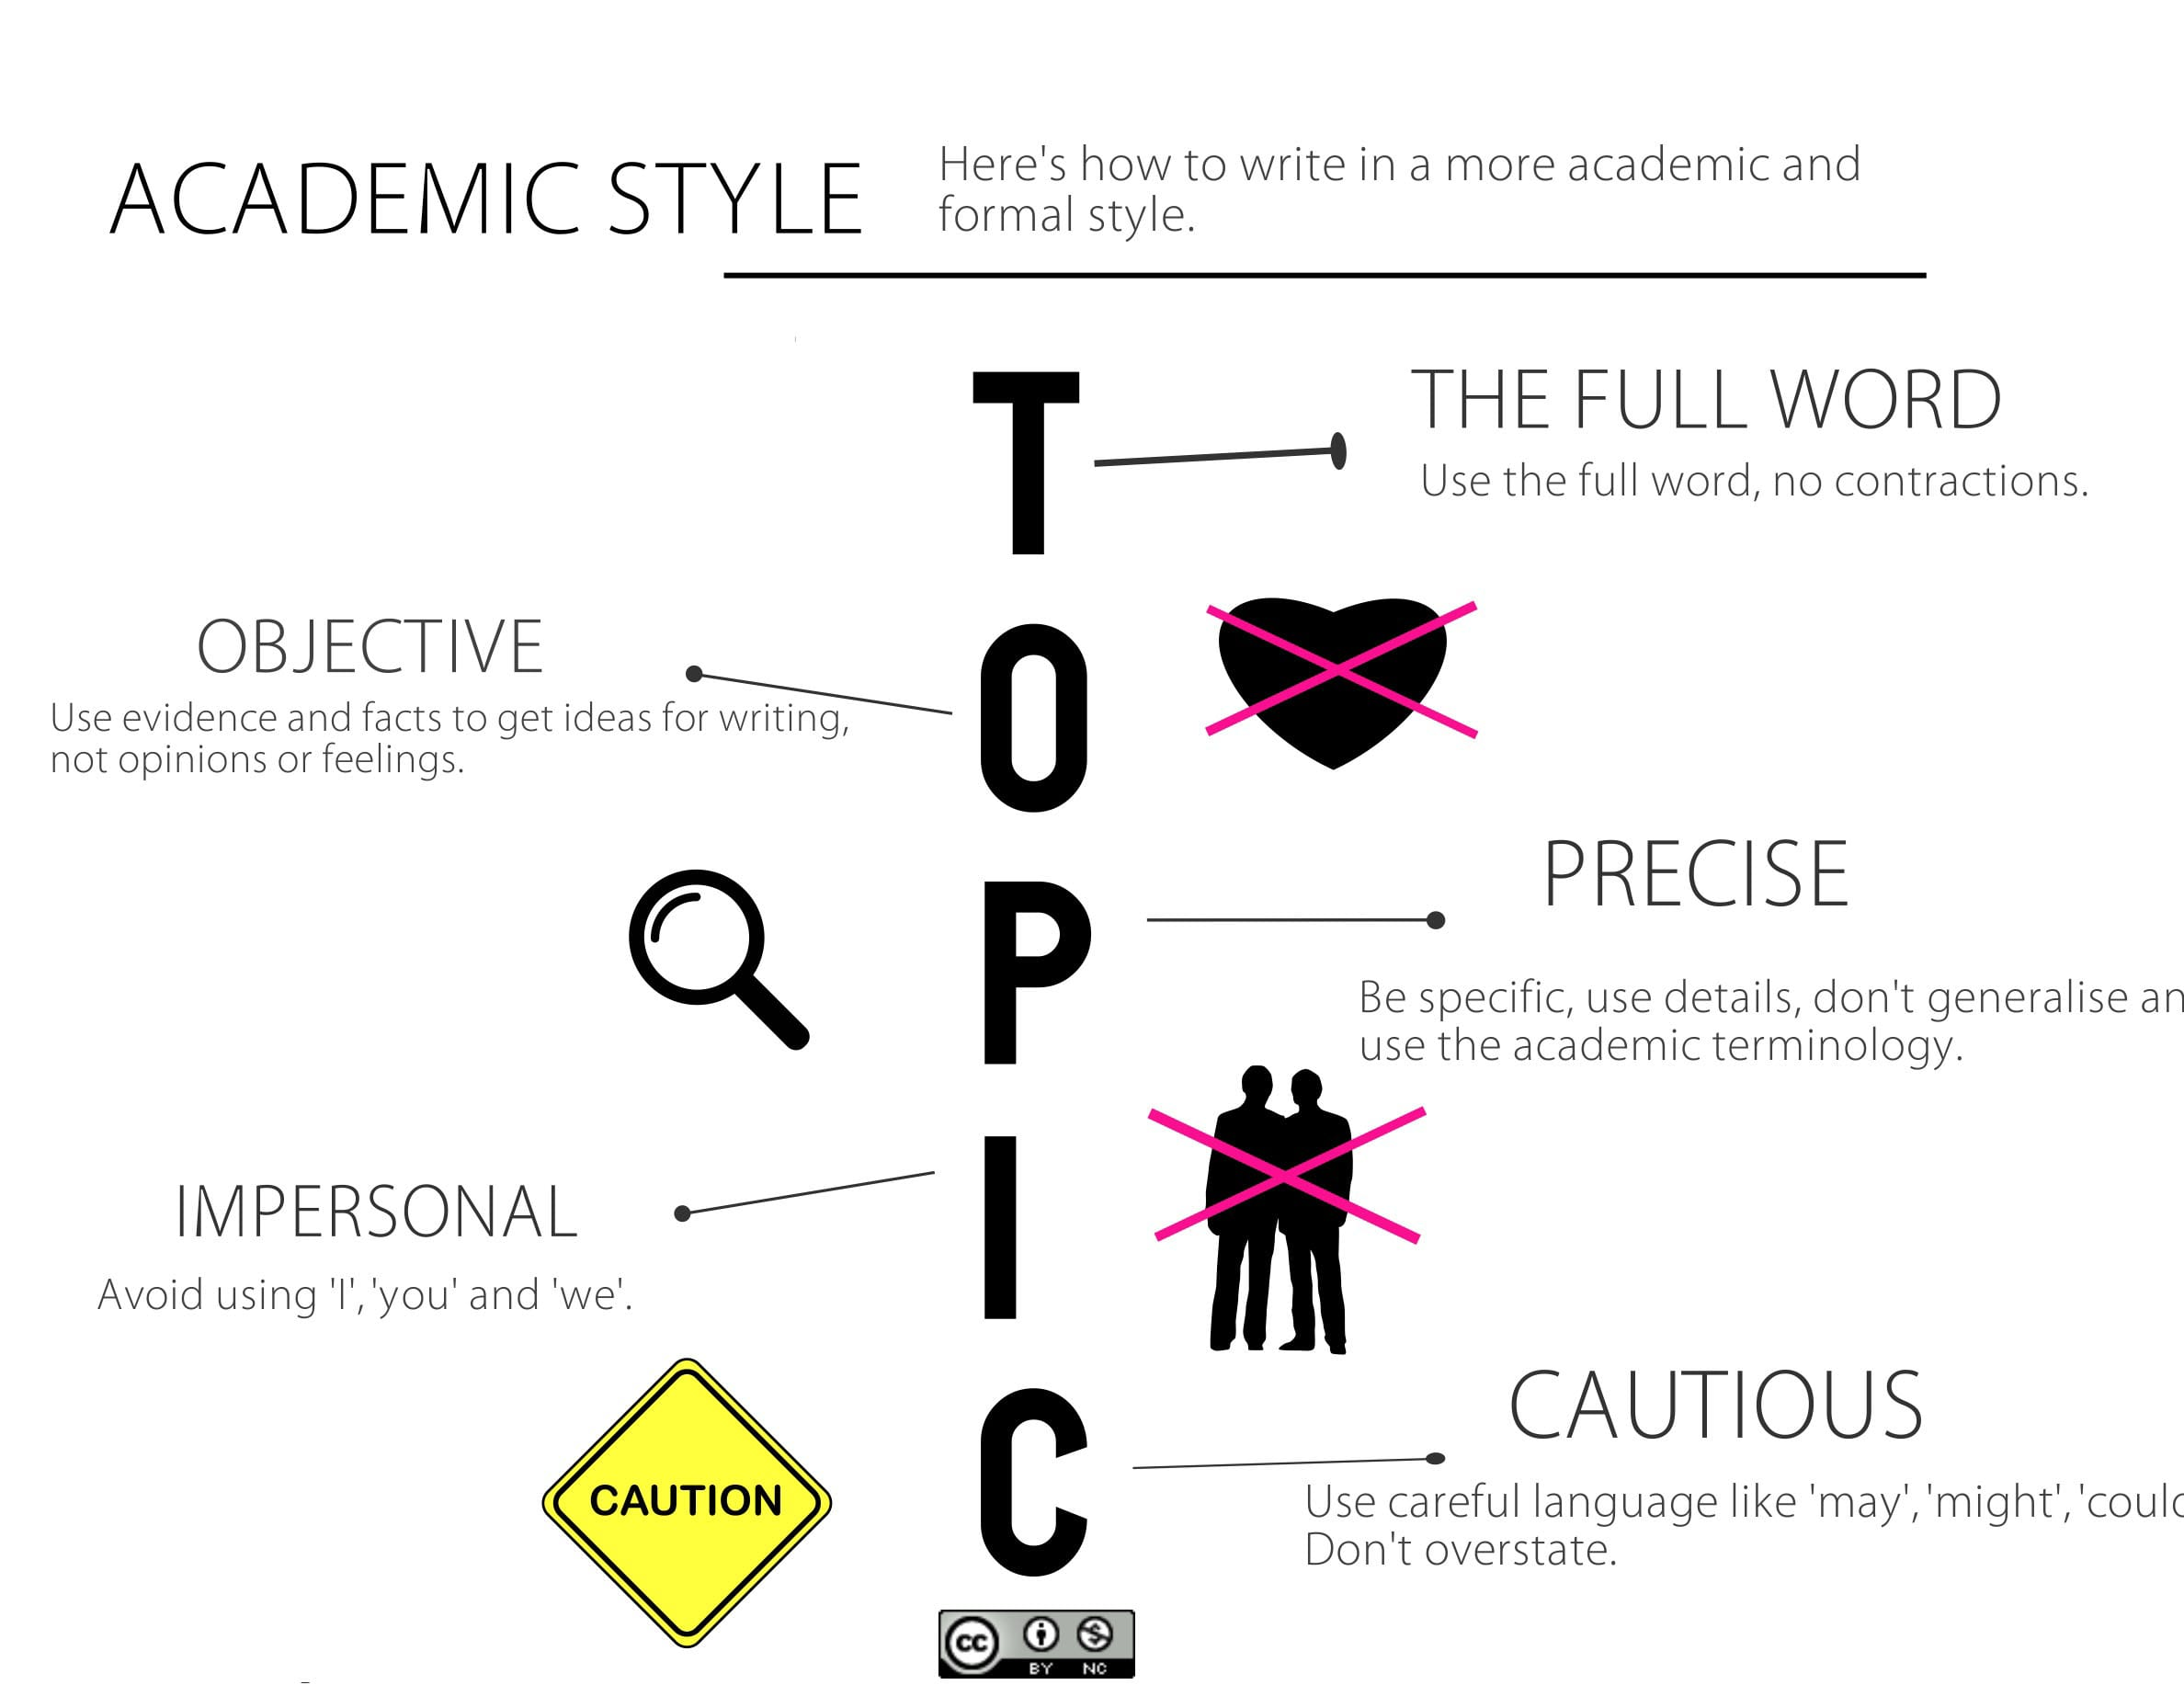 An infographic explaining how to write in a more academic and formal style